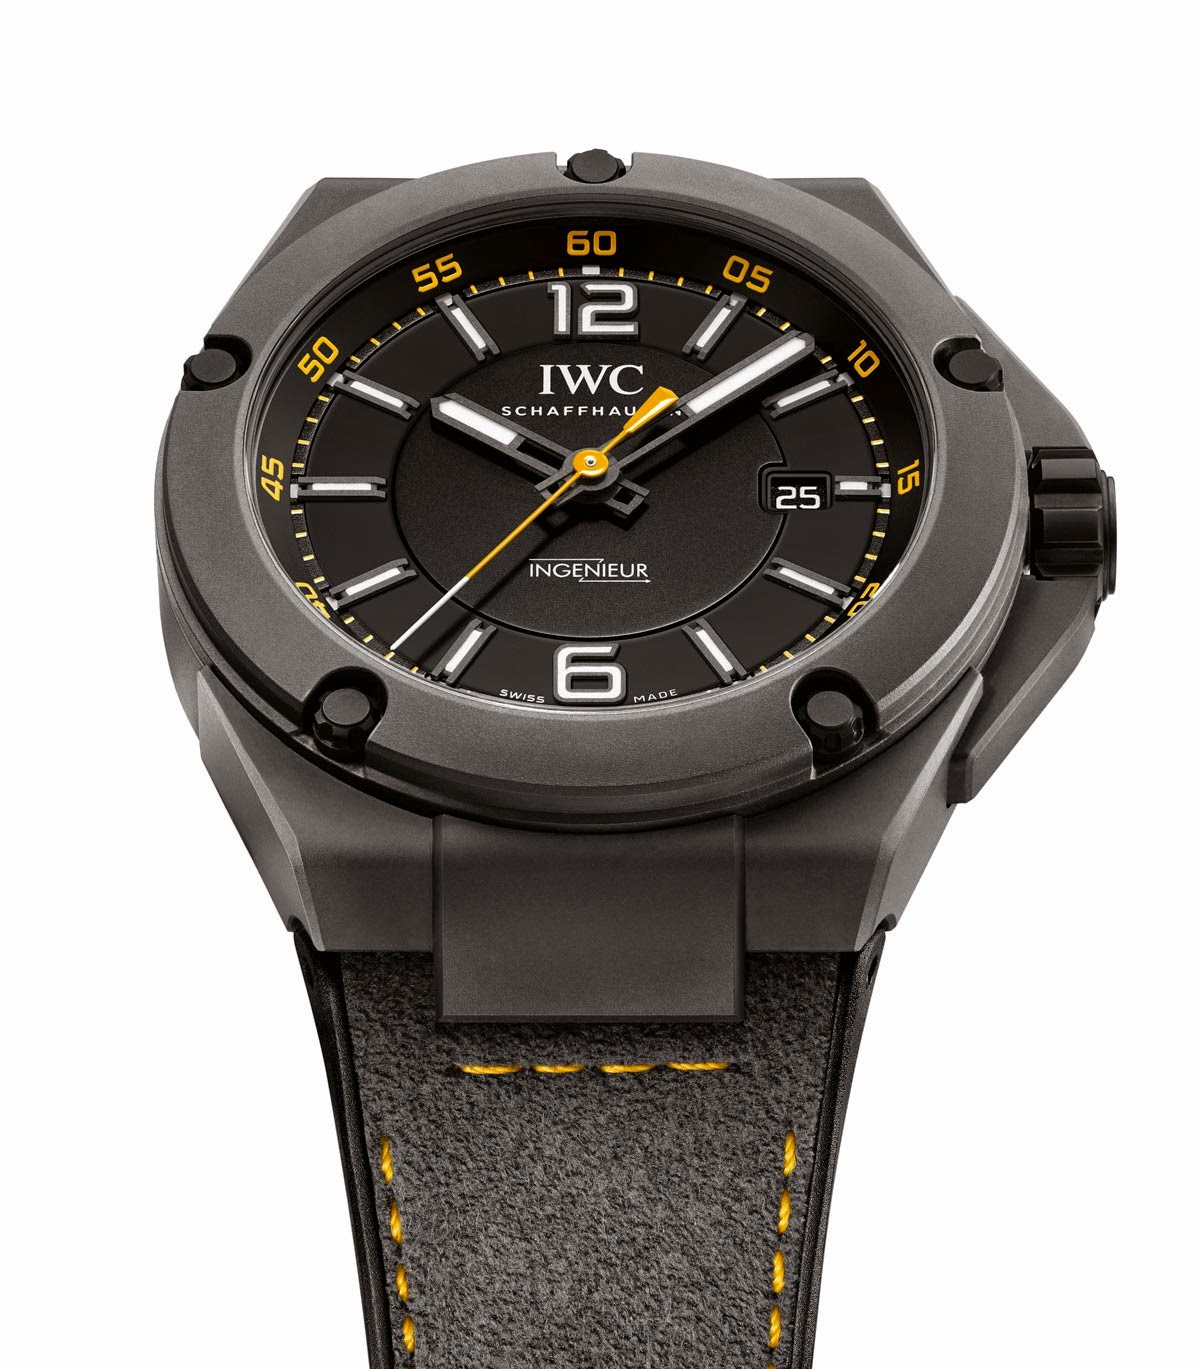 iwc ingenieur automatic edition amg gt time and watches. Black Bedroom Furniture Sets. Home Design Ideas